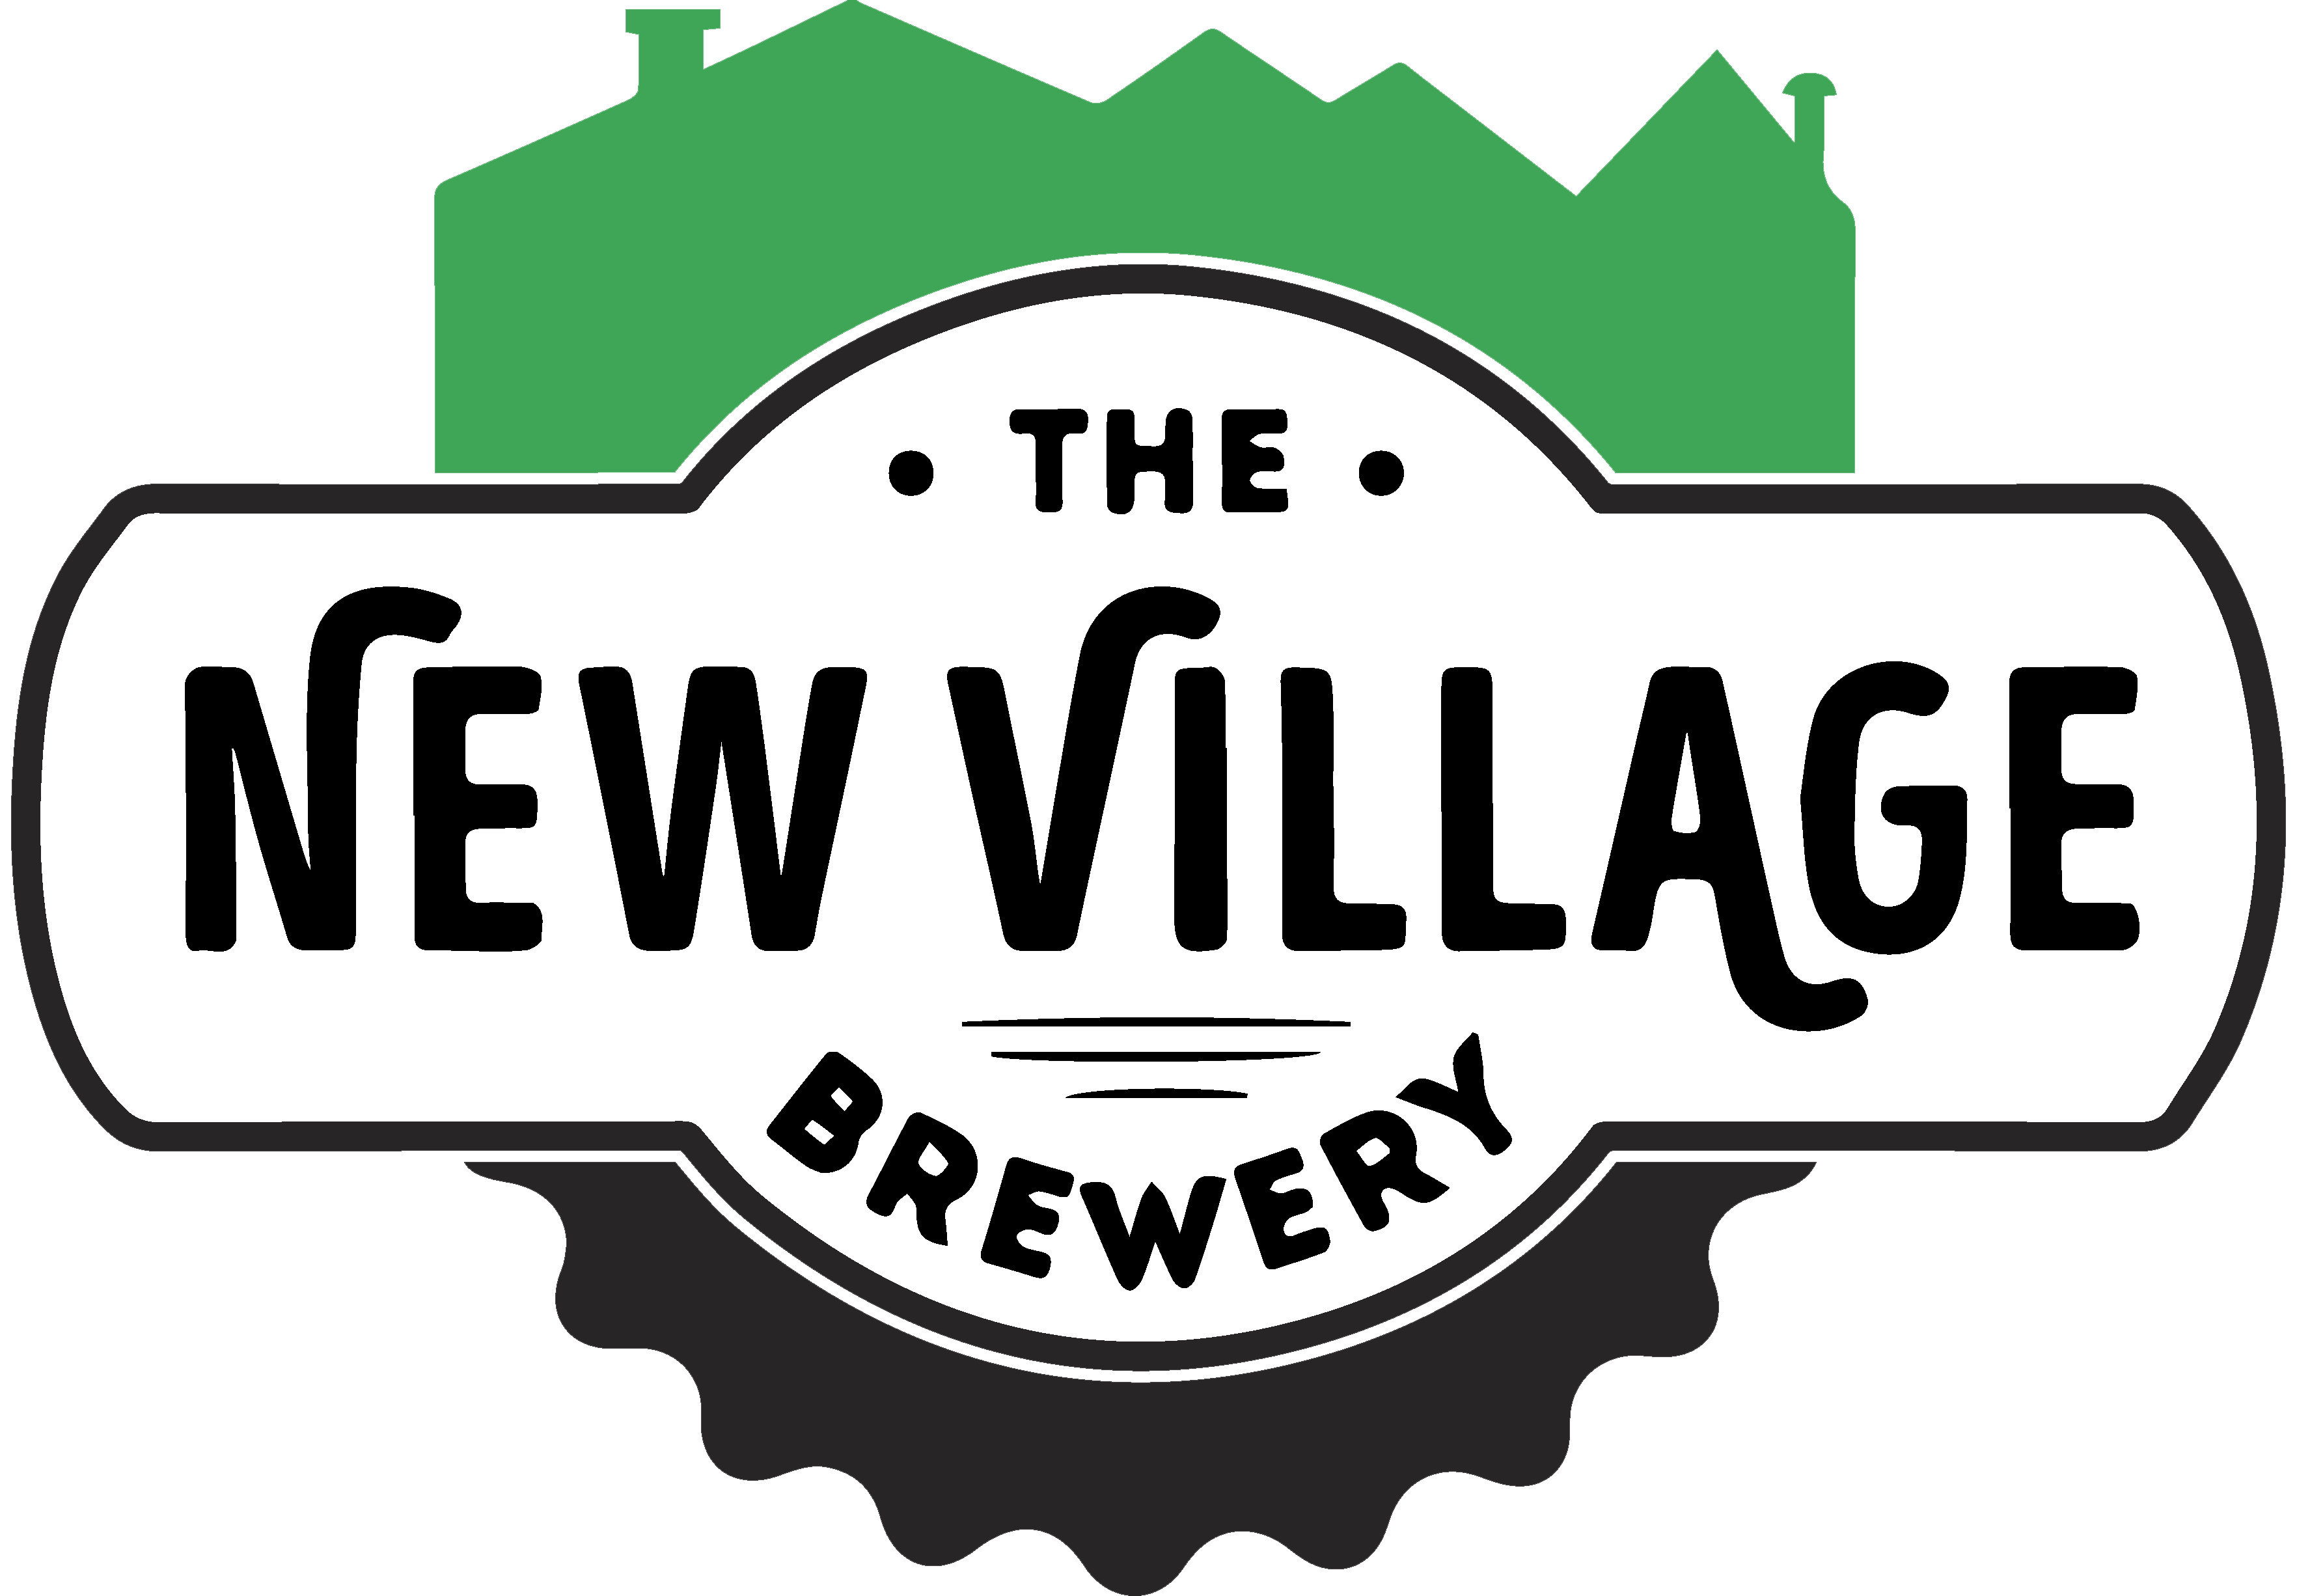 New Village Brewery, Oriental NC